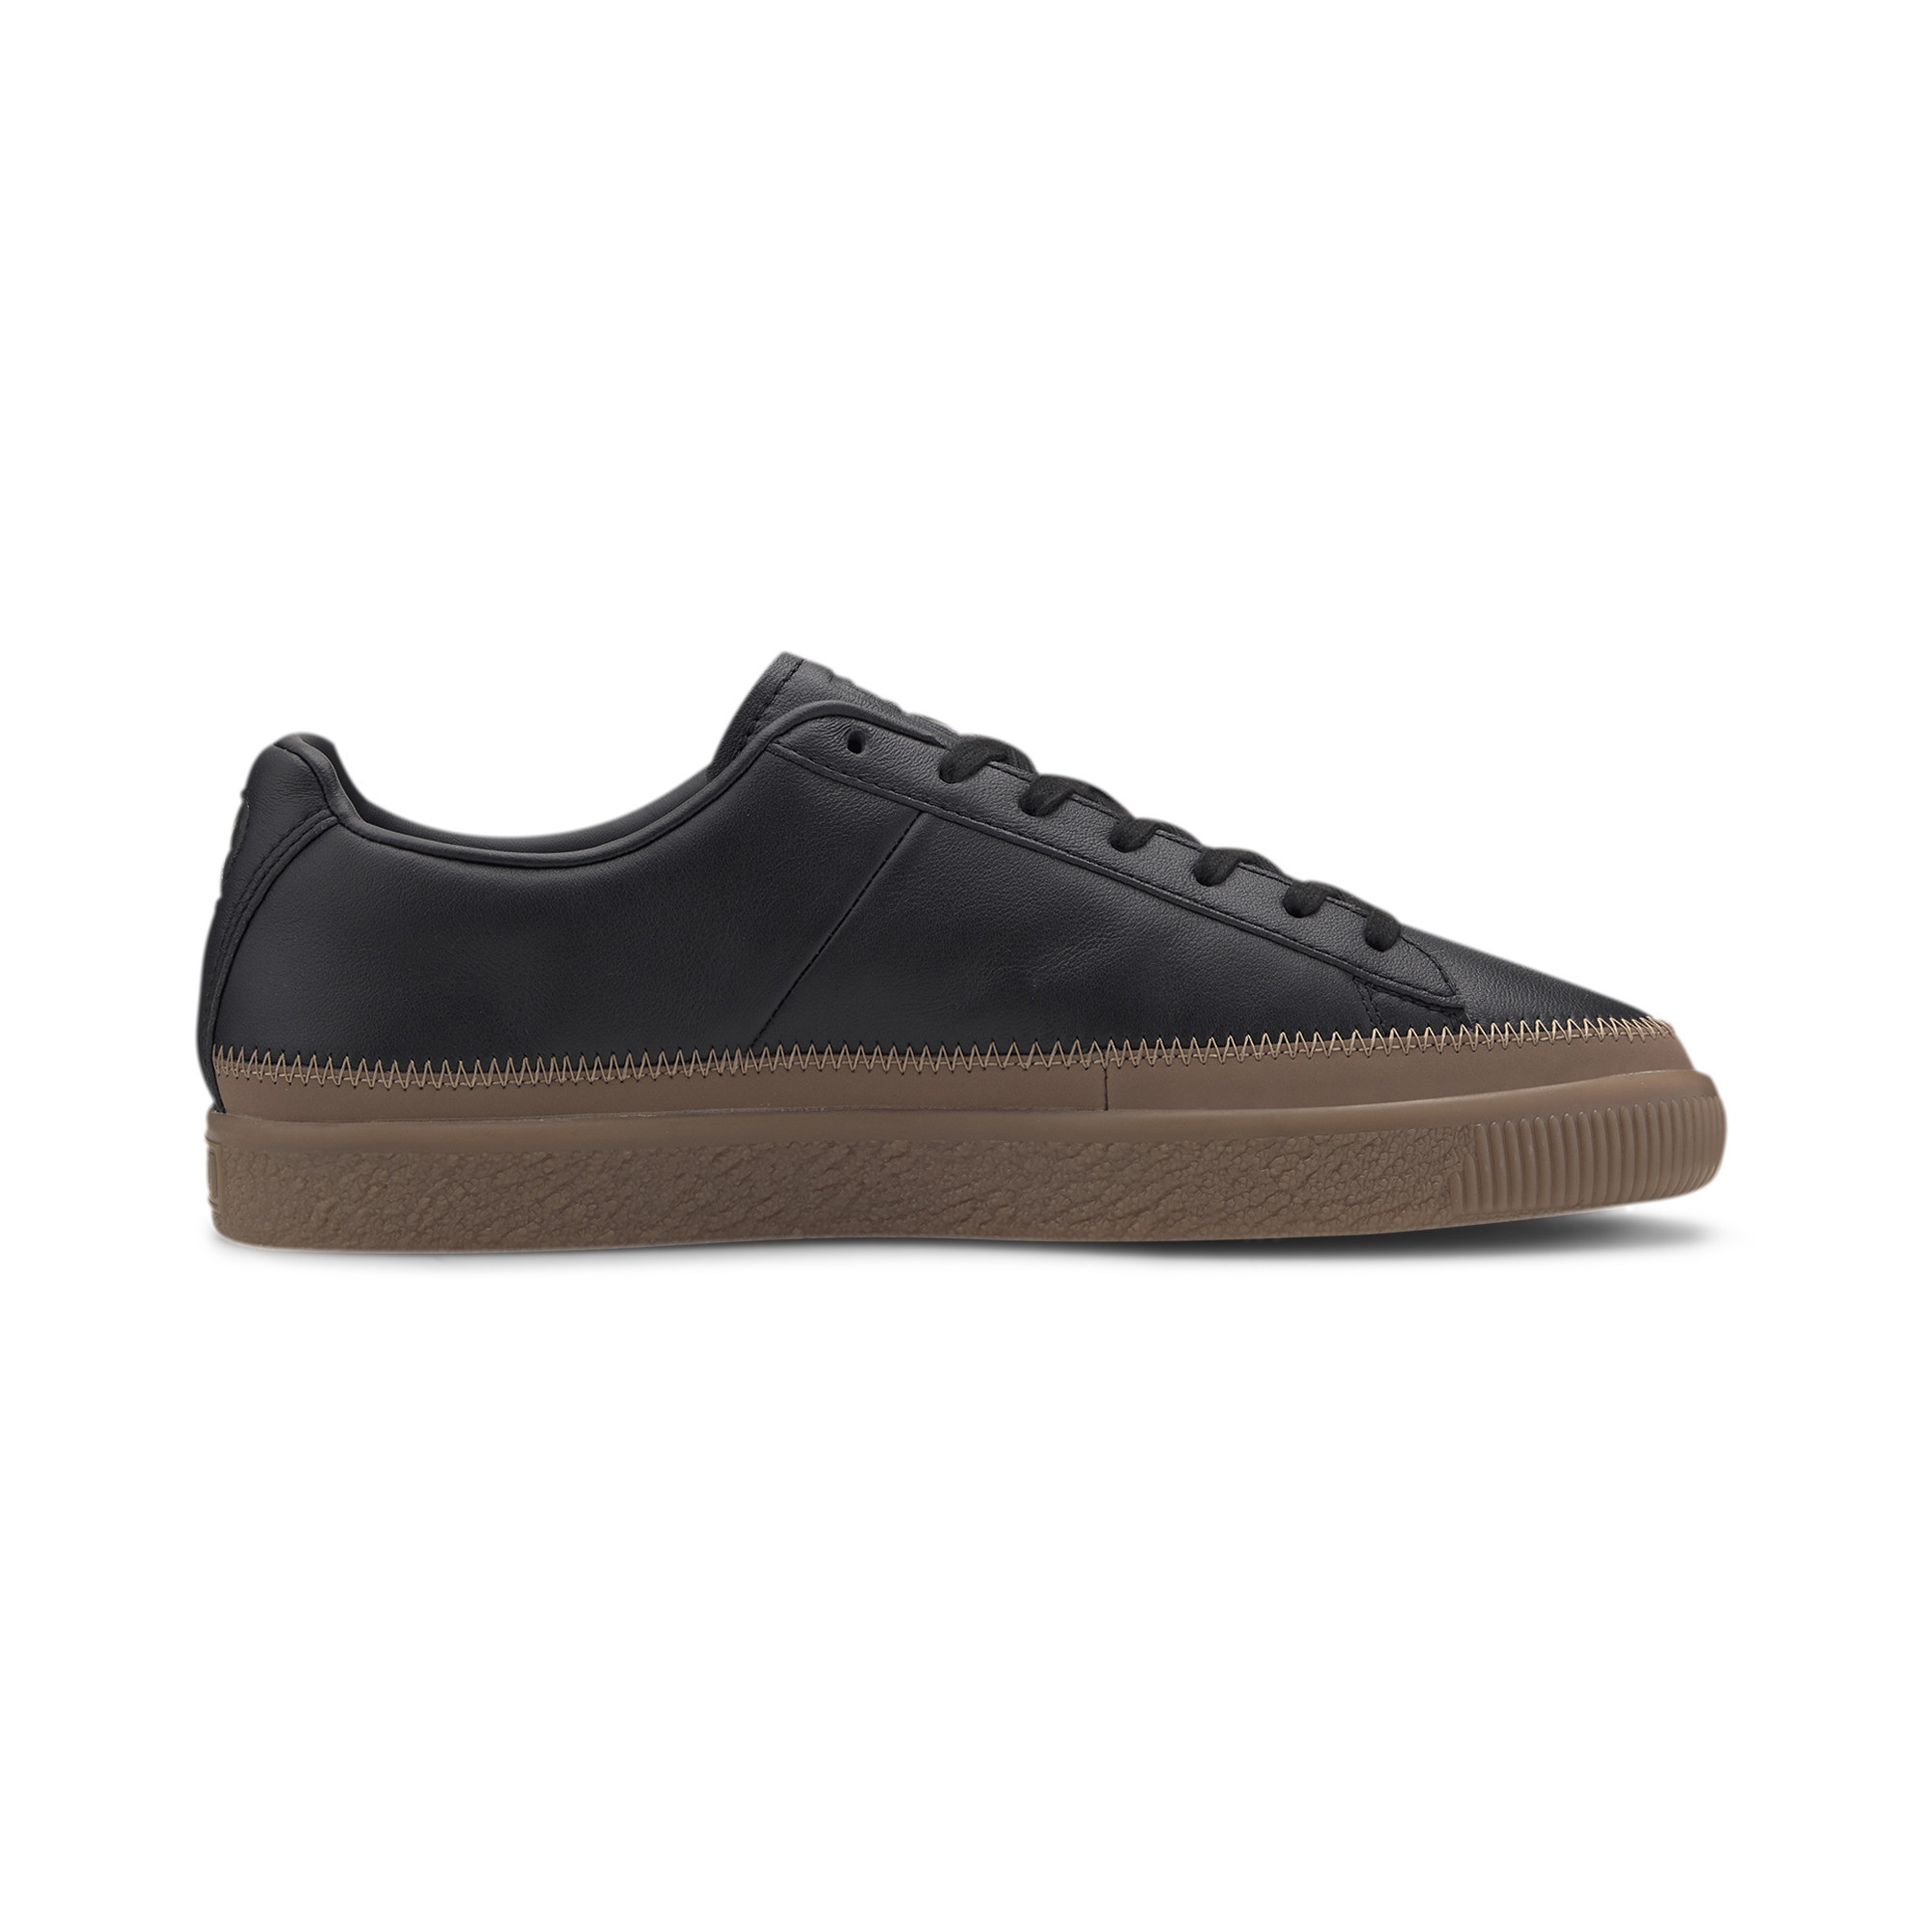 PUMA-Men-039-s-Basket-Trim-PRM-Sneakers thumbnail 7